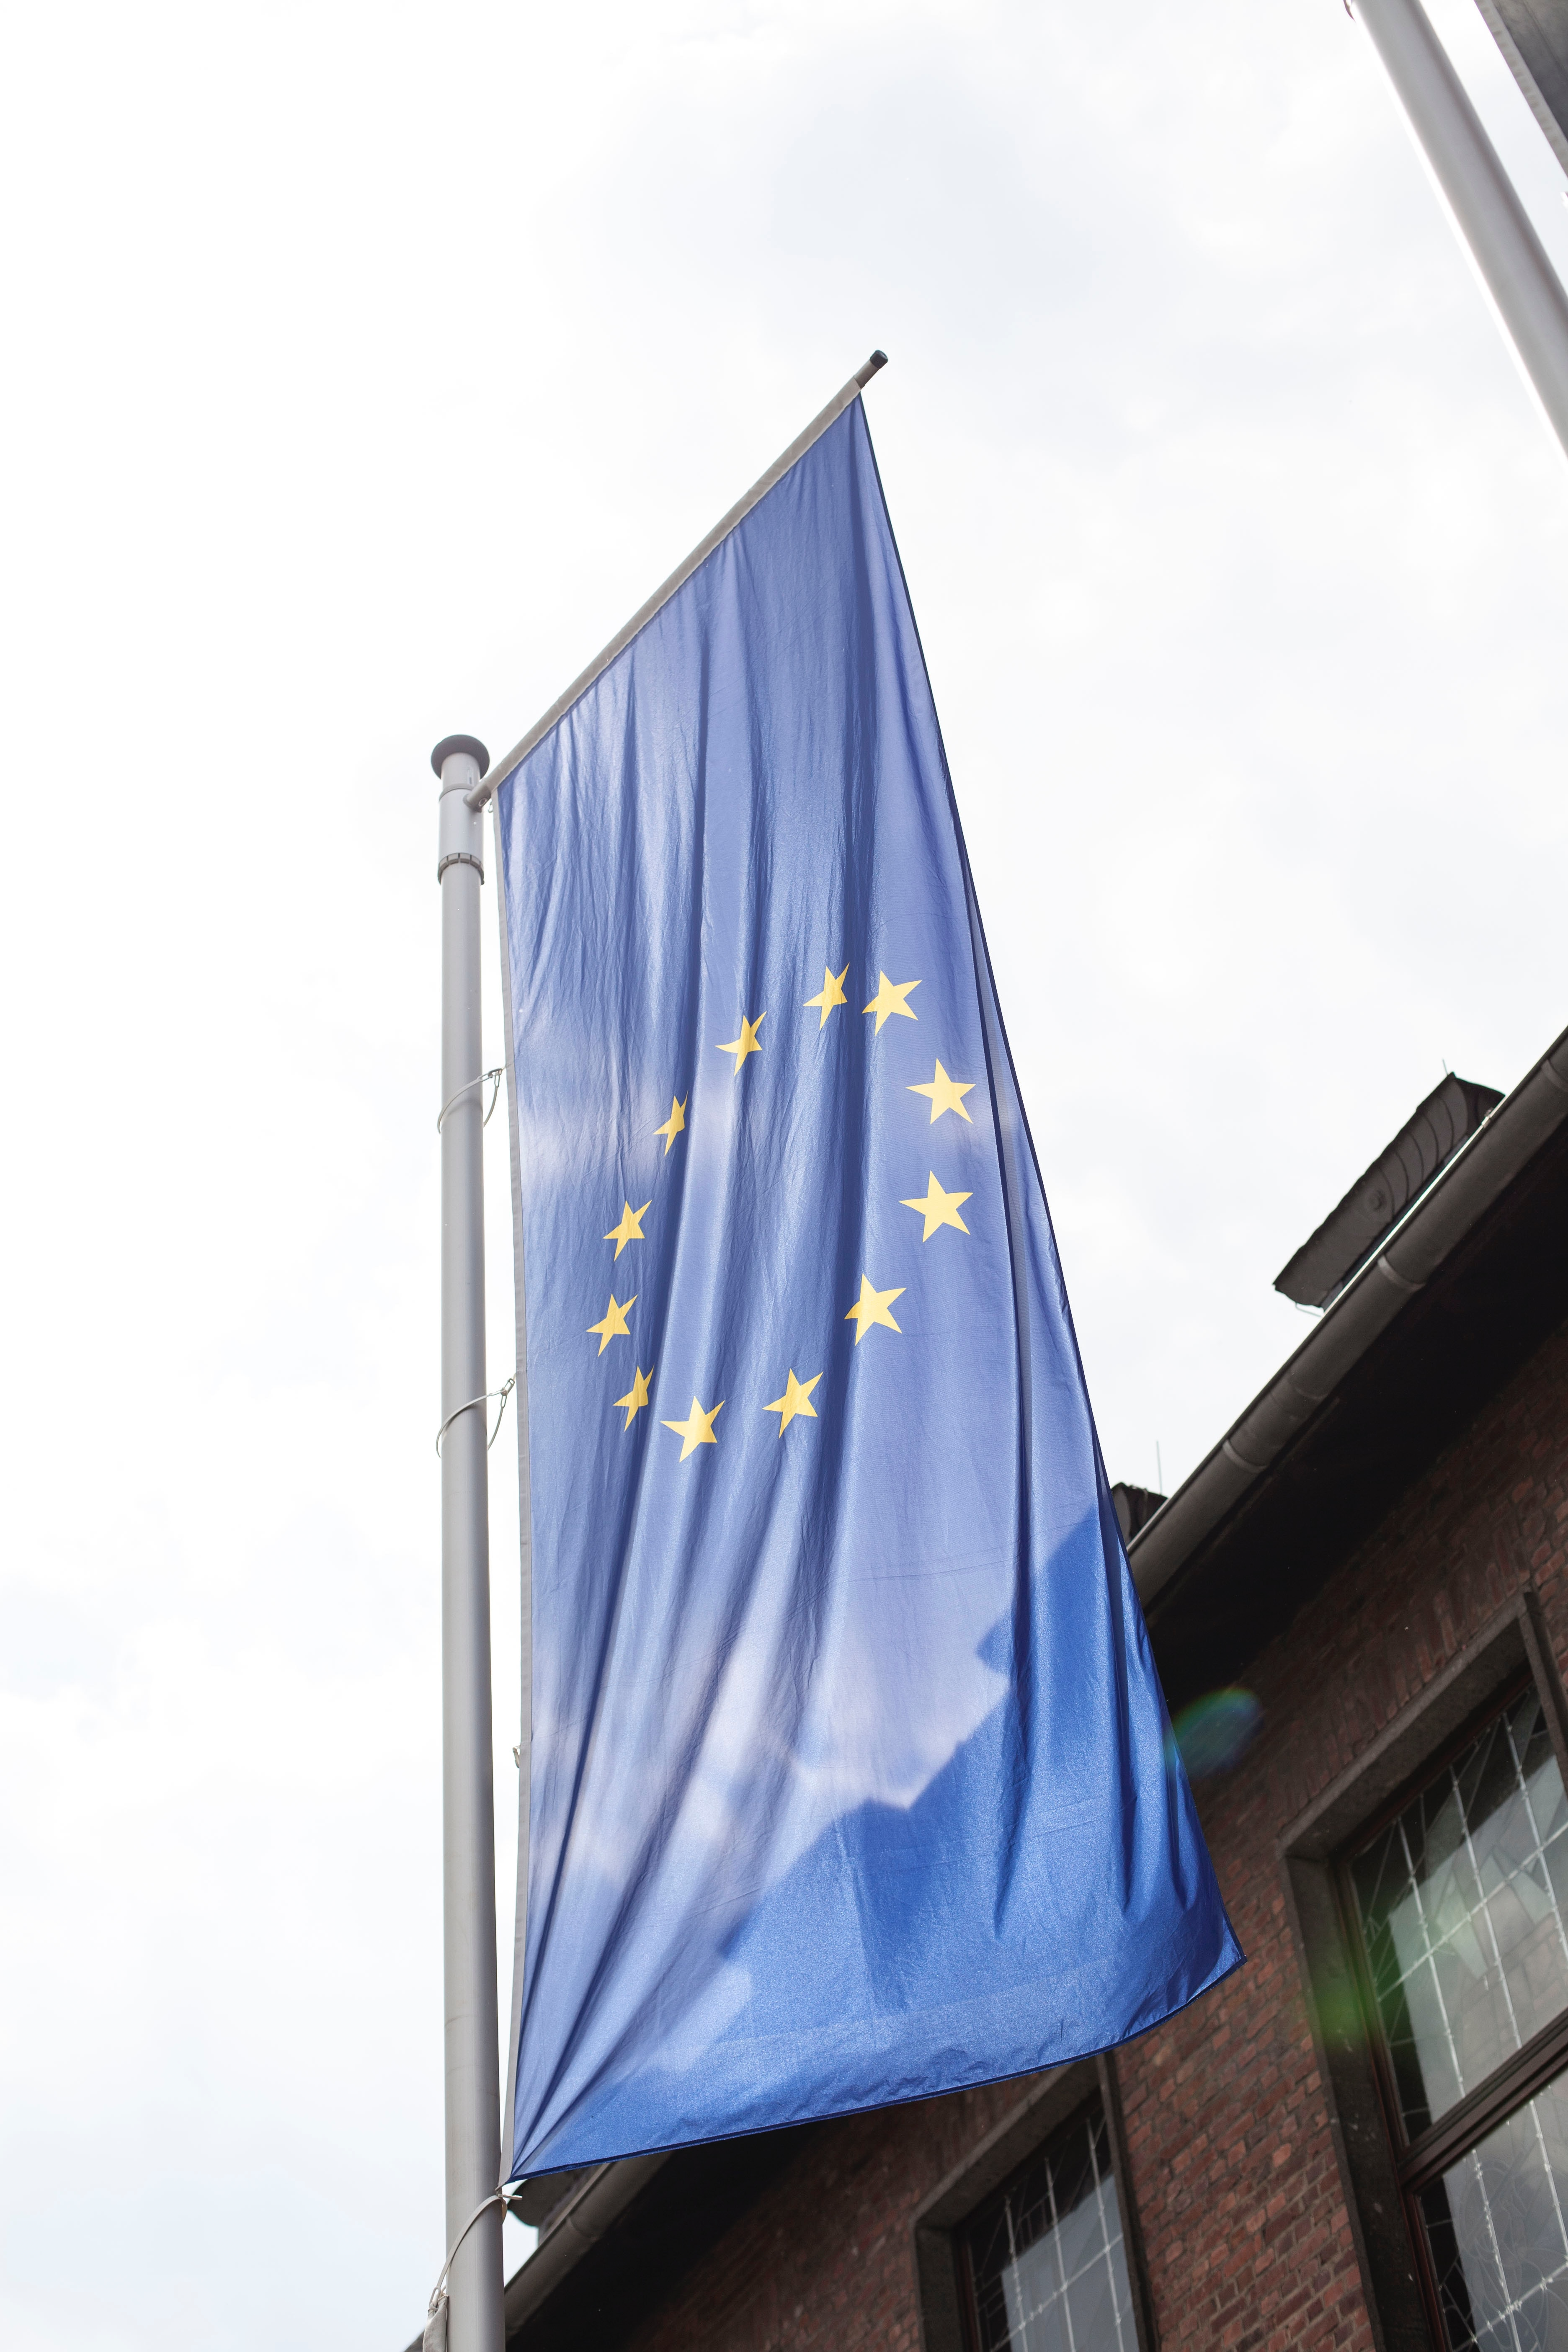 Steven Bosworth Contributing Author to European Commission's Joint Research Centre